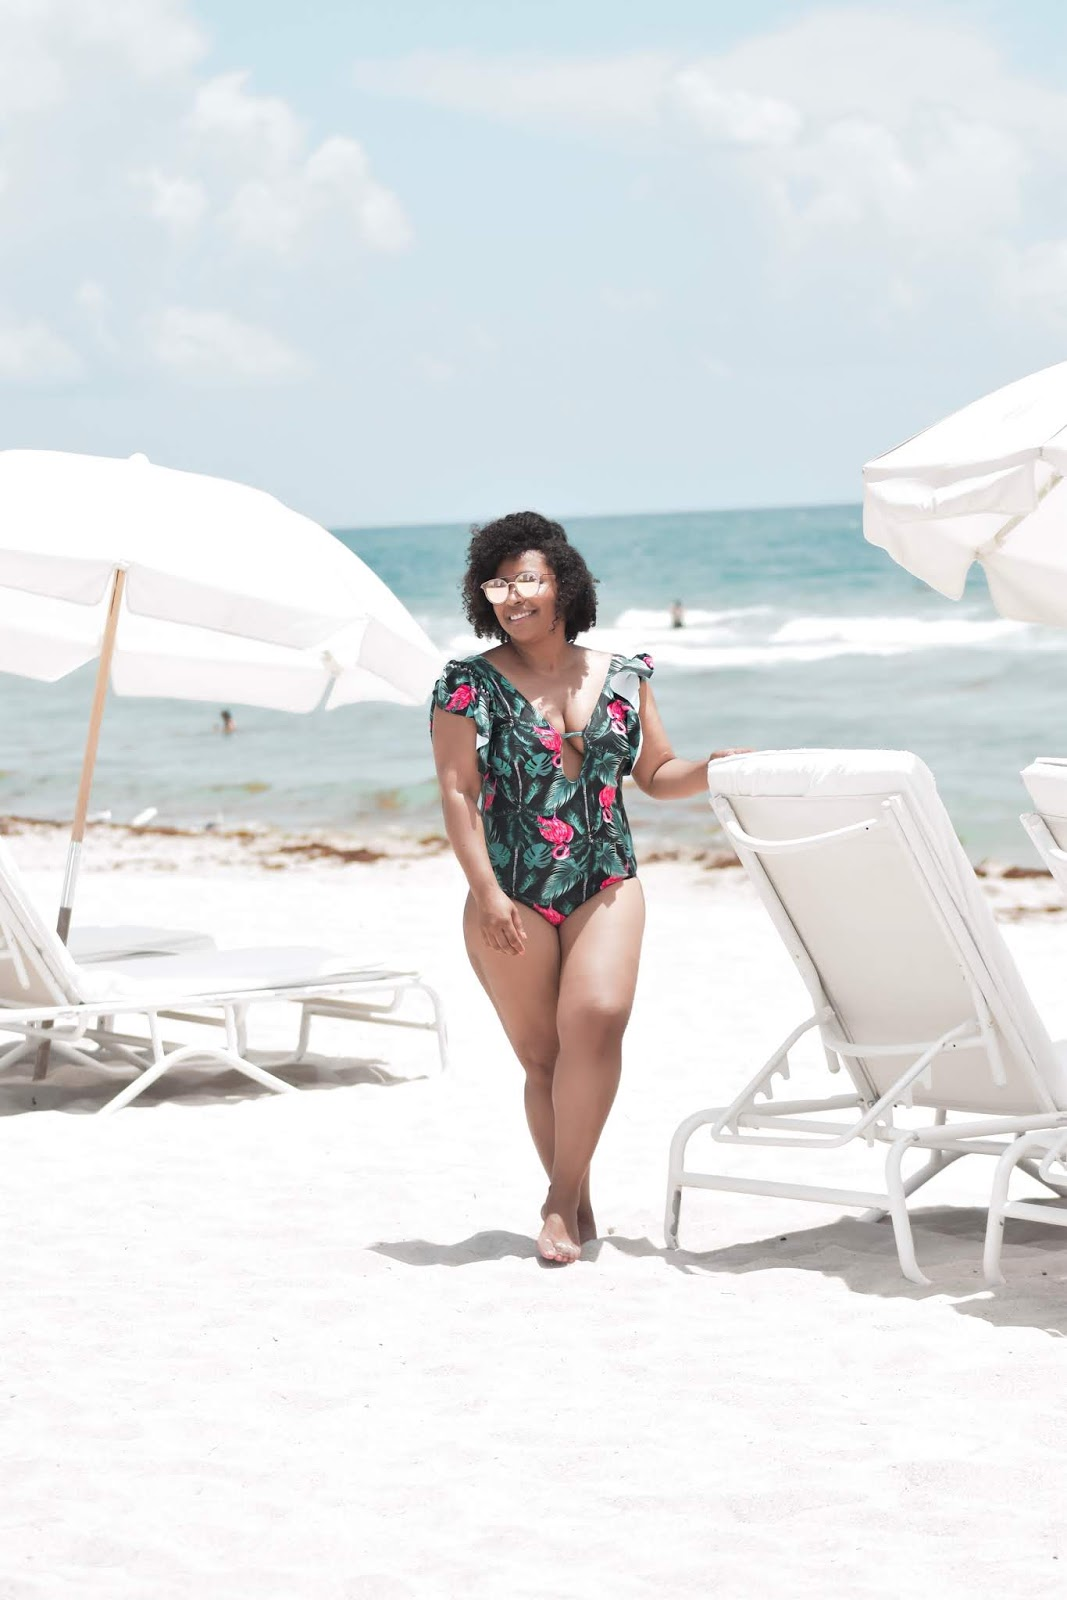 Amiclubwear, trendy bathing suit, miami beach, south beach, one piece bathing suit, postpartum body.